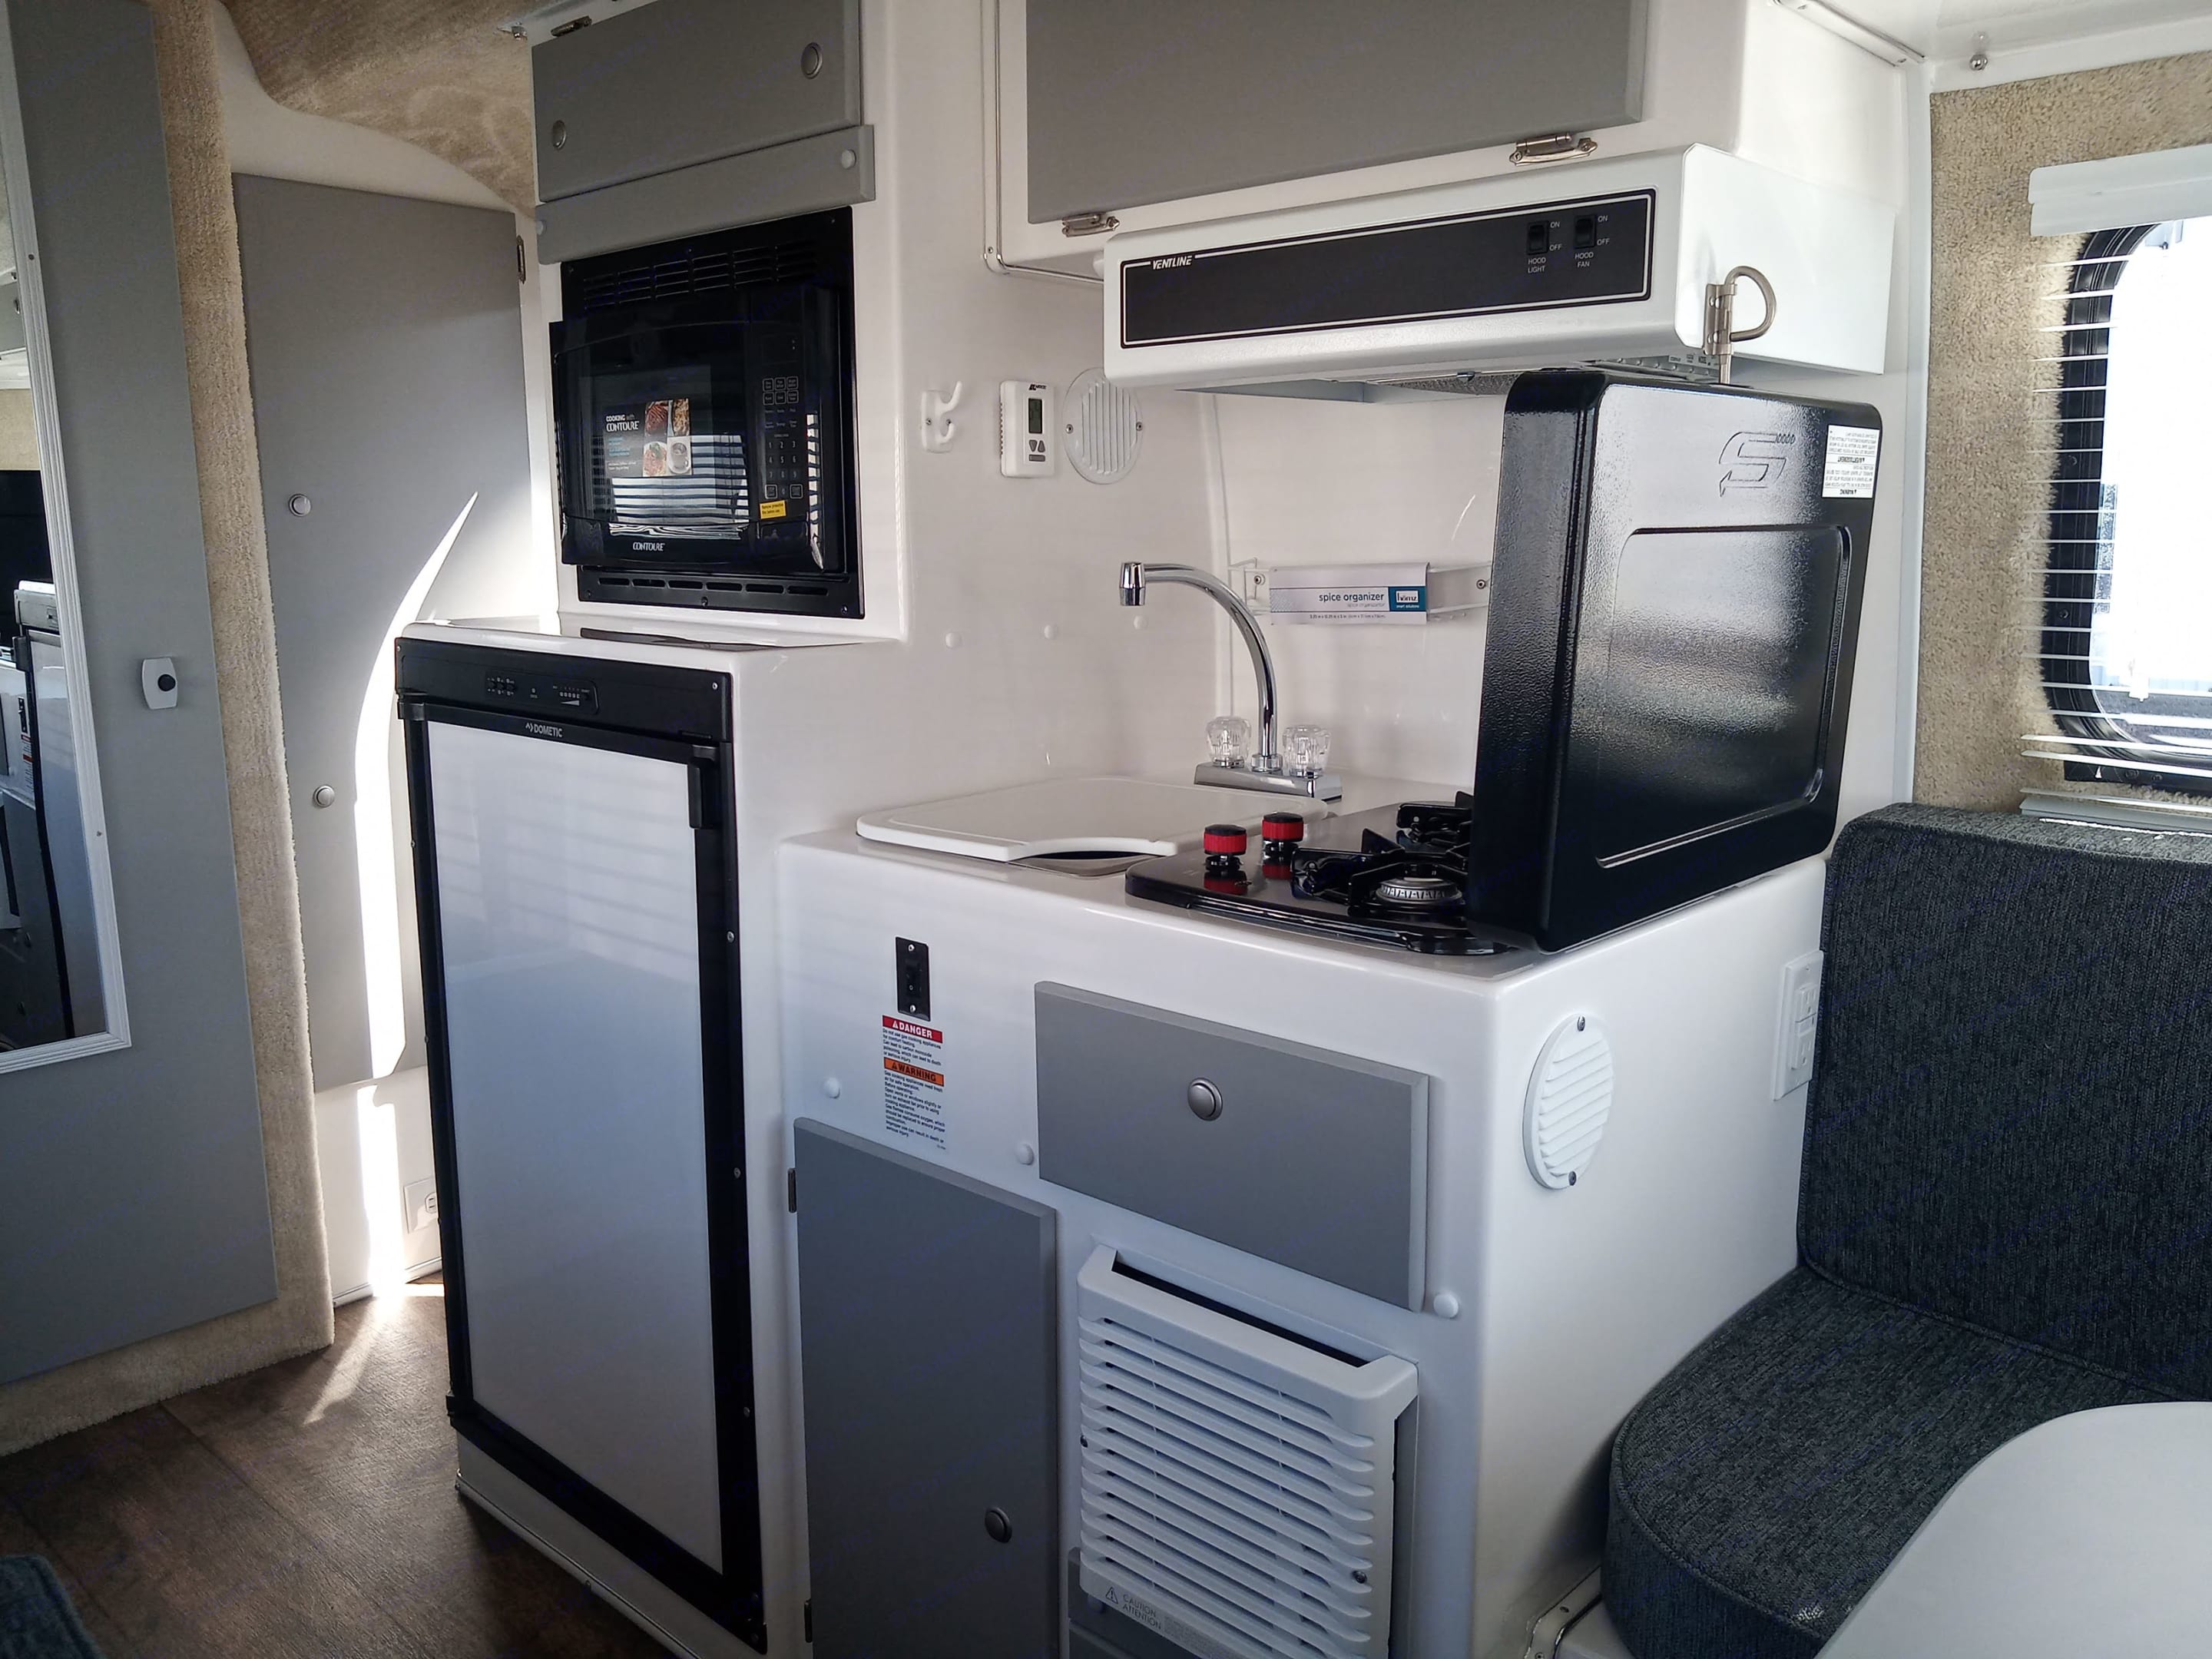 Refrigerator, microwave, sink and stove. Casita 17' Spirit Deluxe 2020